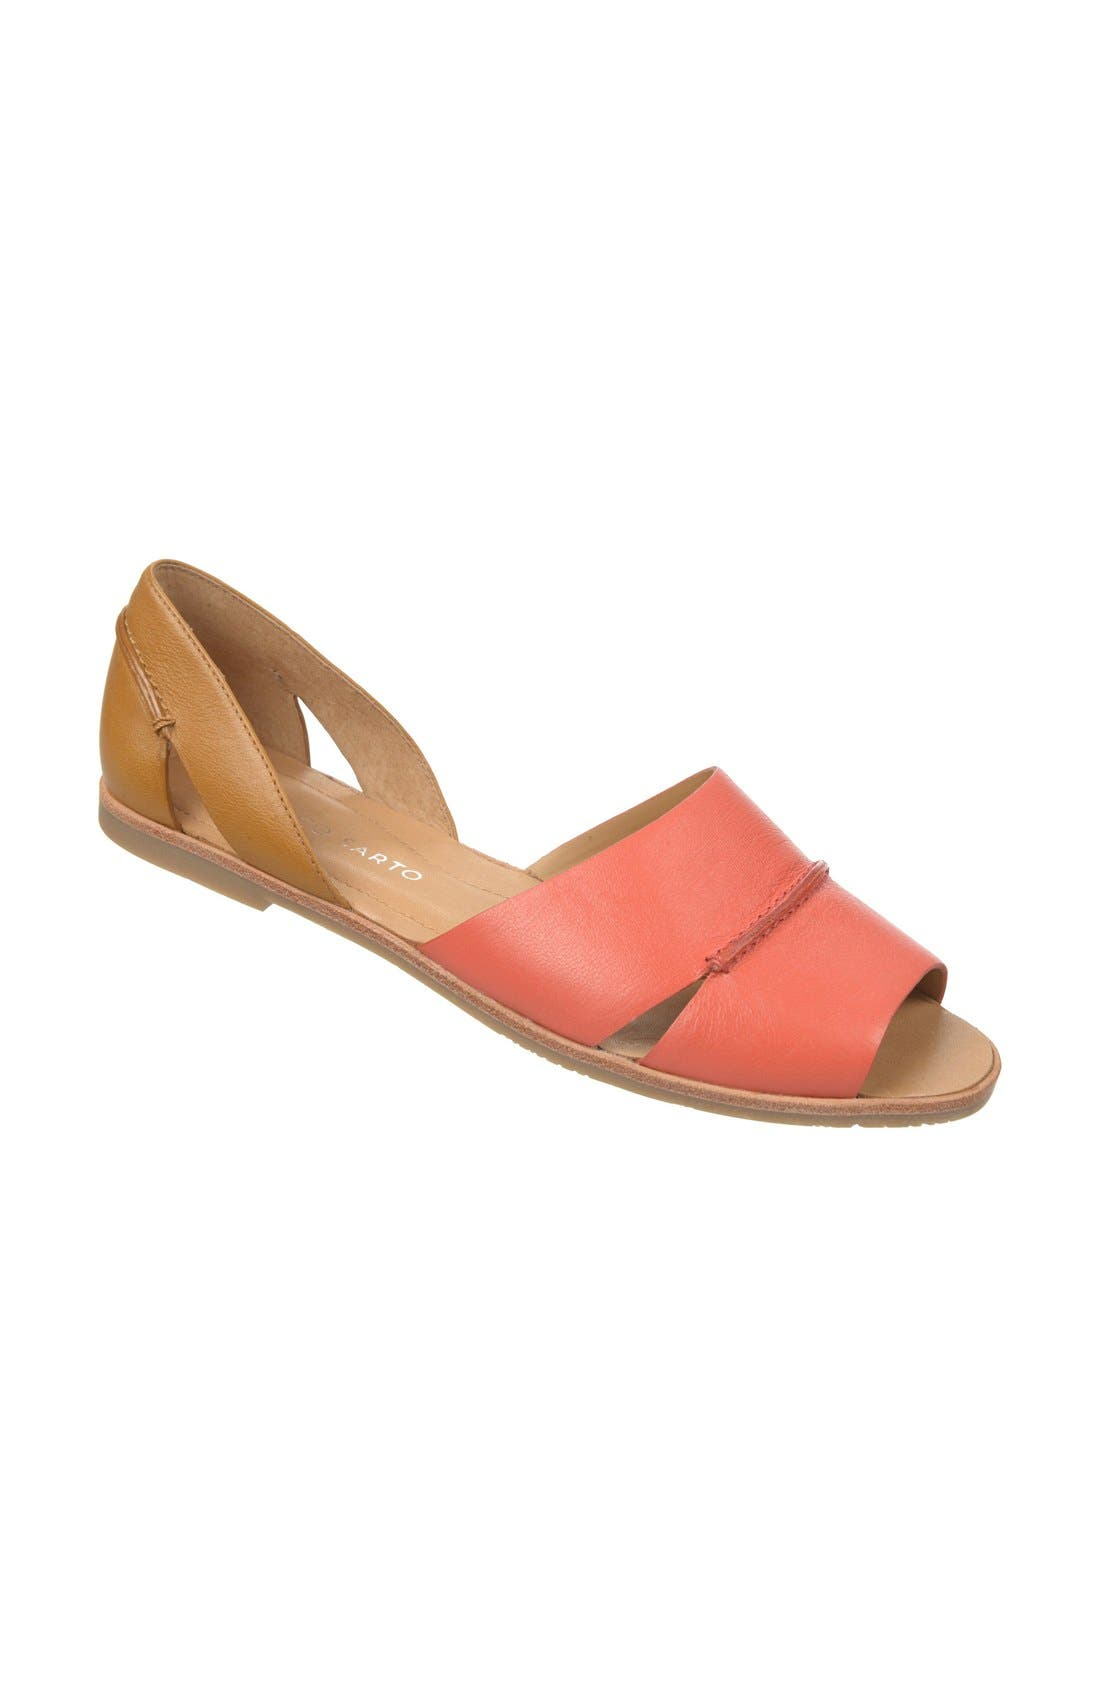 Main Image - Franco Sarto 'Vivace' Leather d'Orsay Flat (Women)